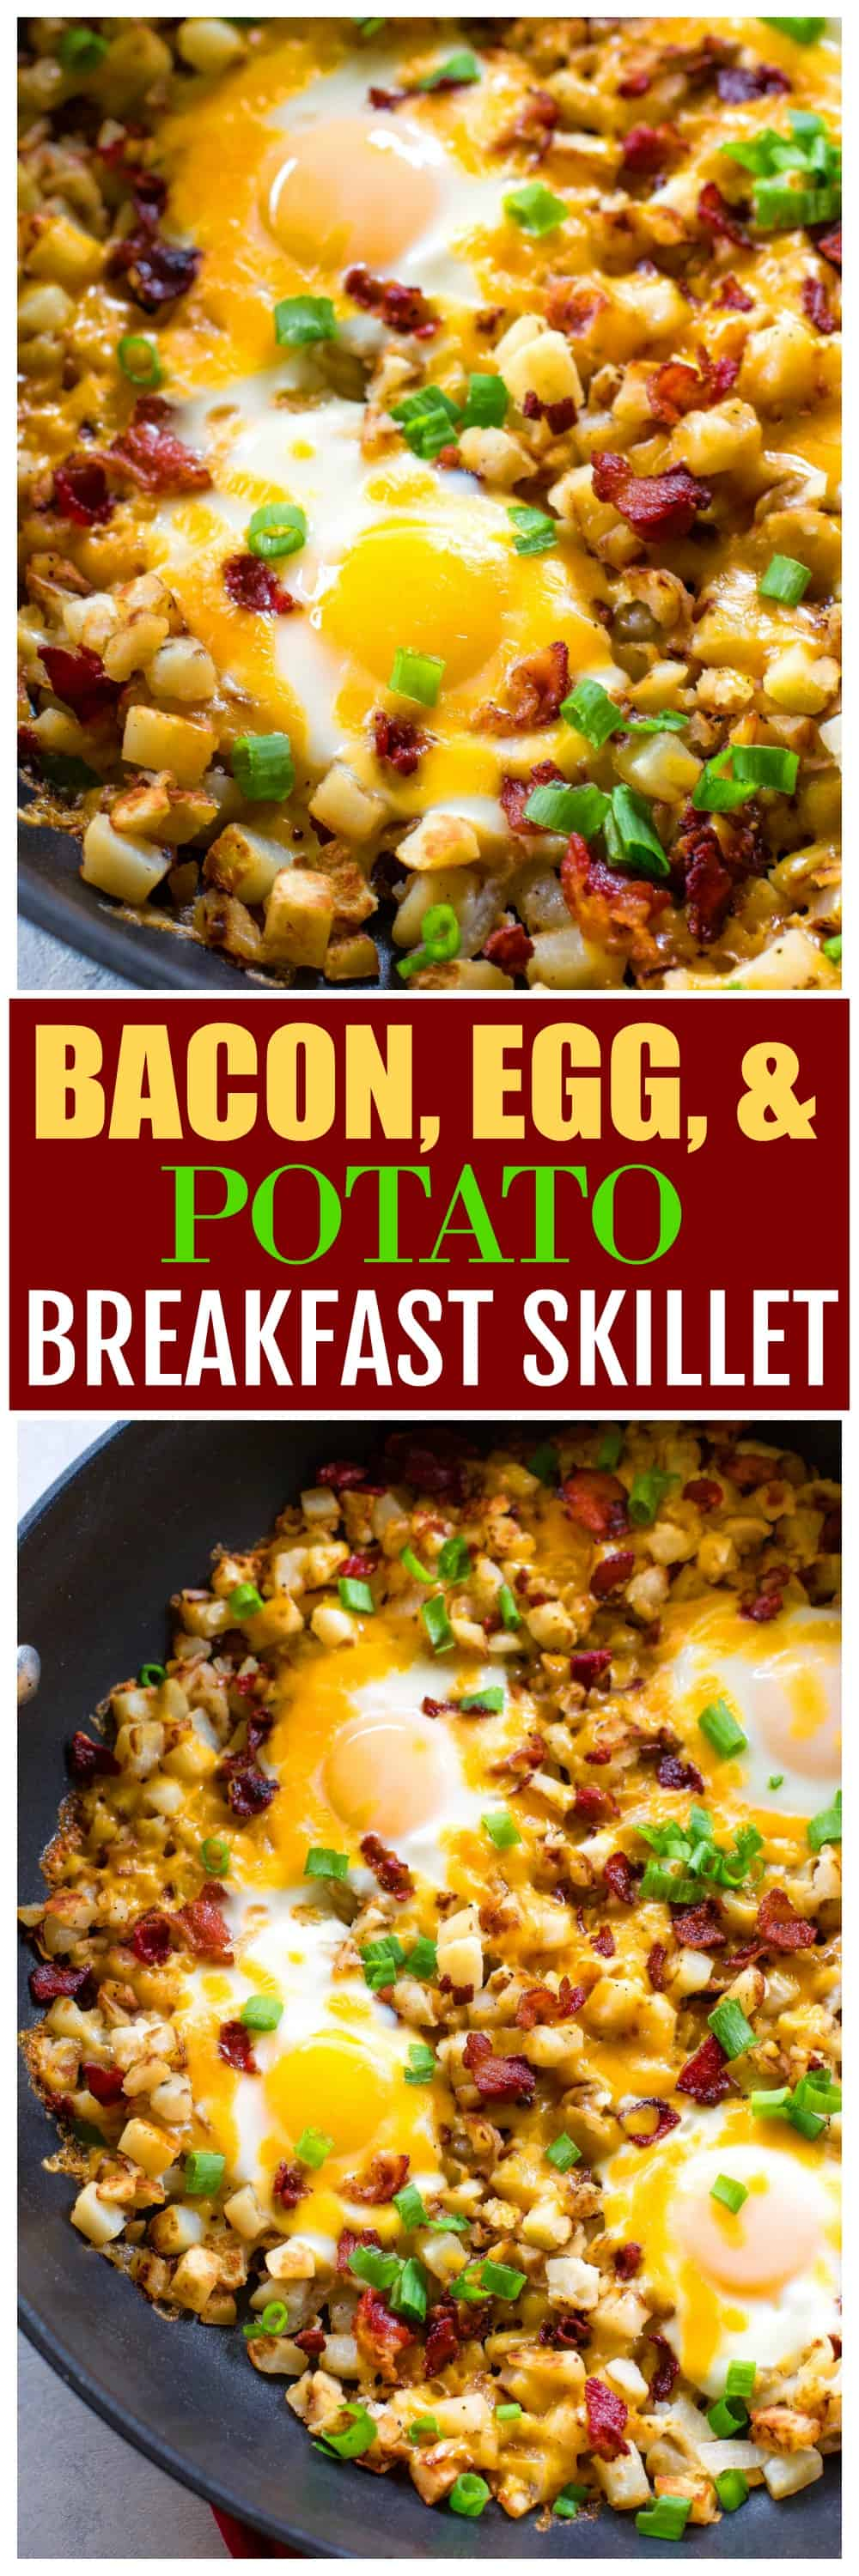 Bacon, Egg, and Potato Breakfast Skillet